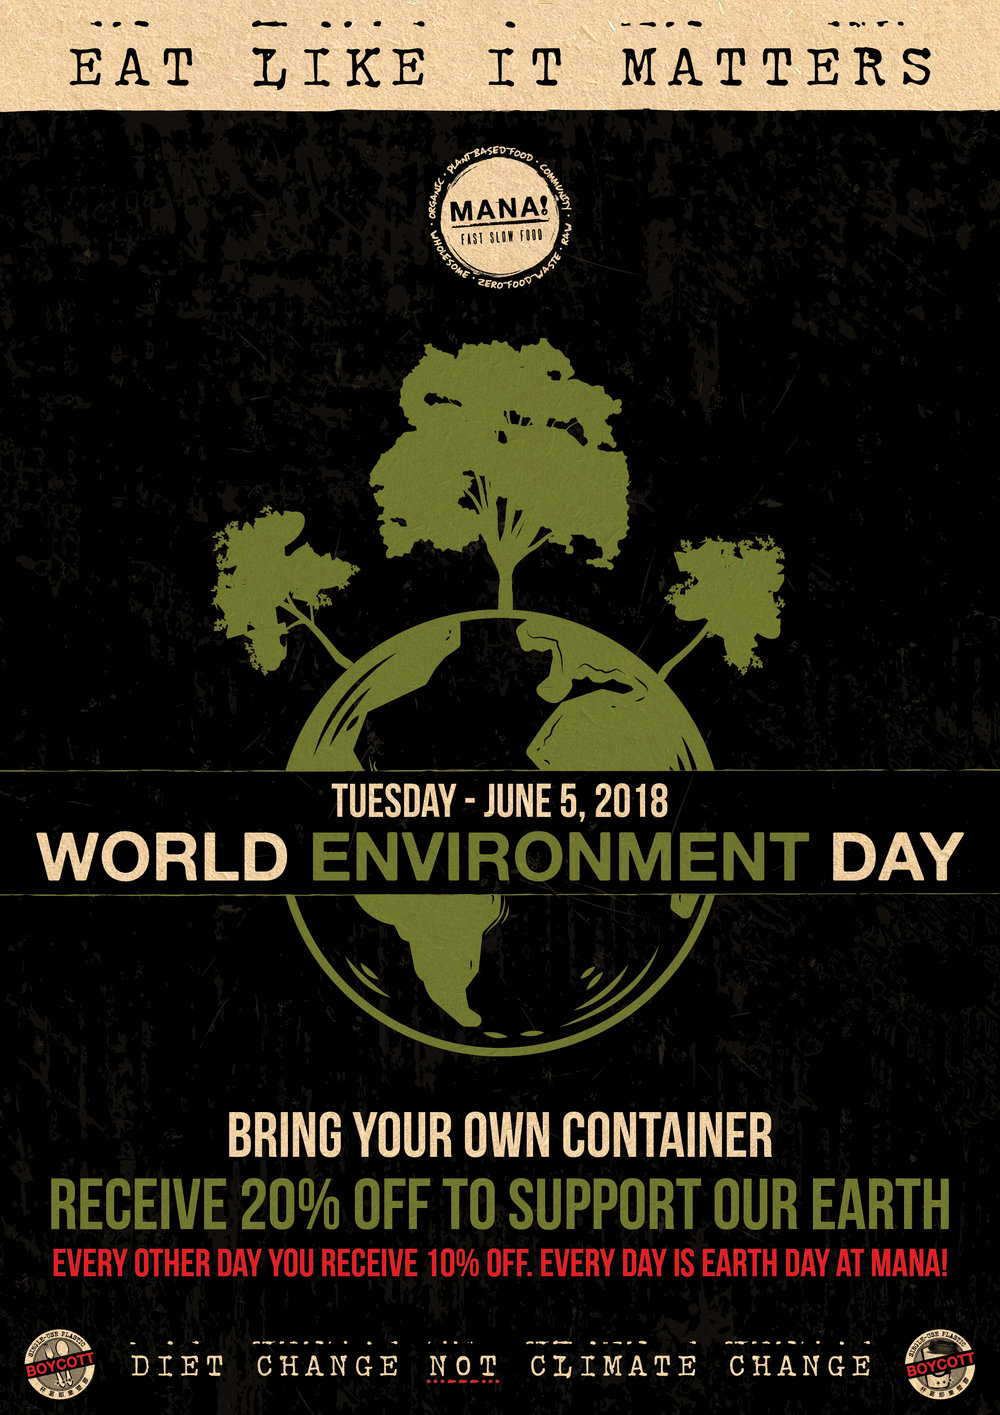 MANA! Community Days (World Environment Day) - Poster 02A-01.jpg